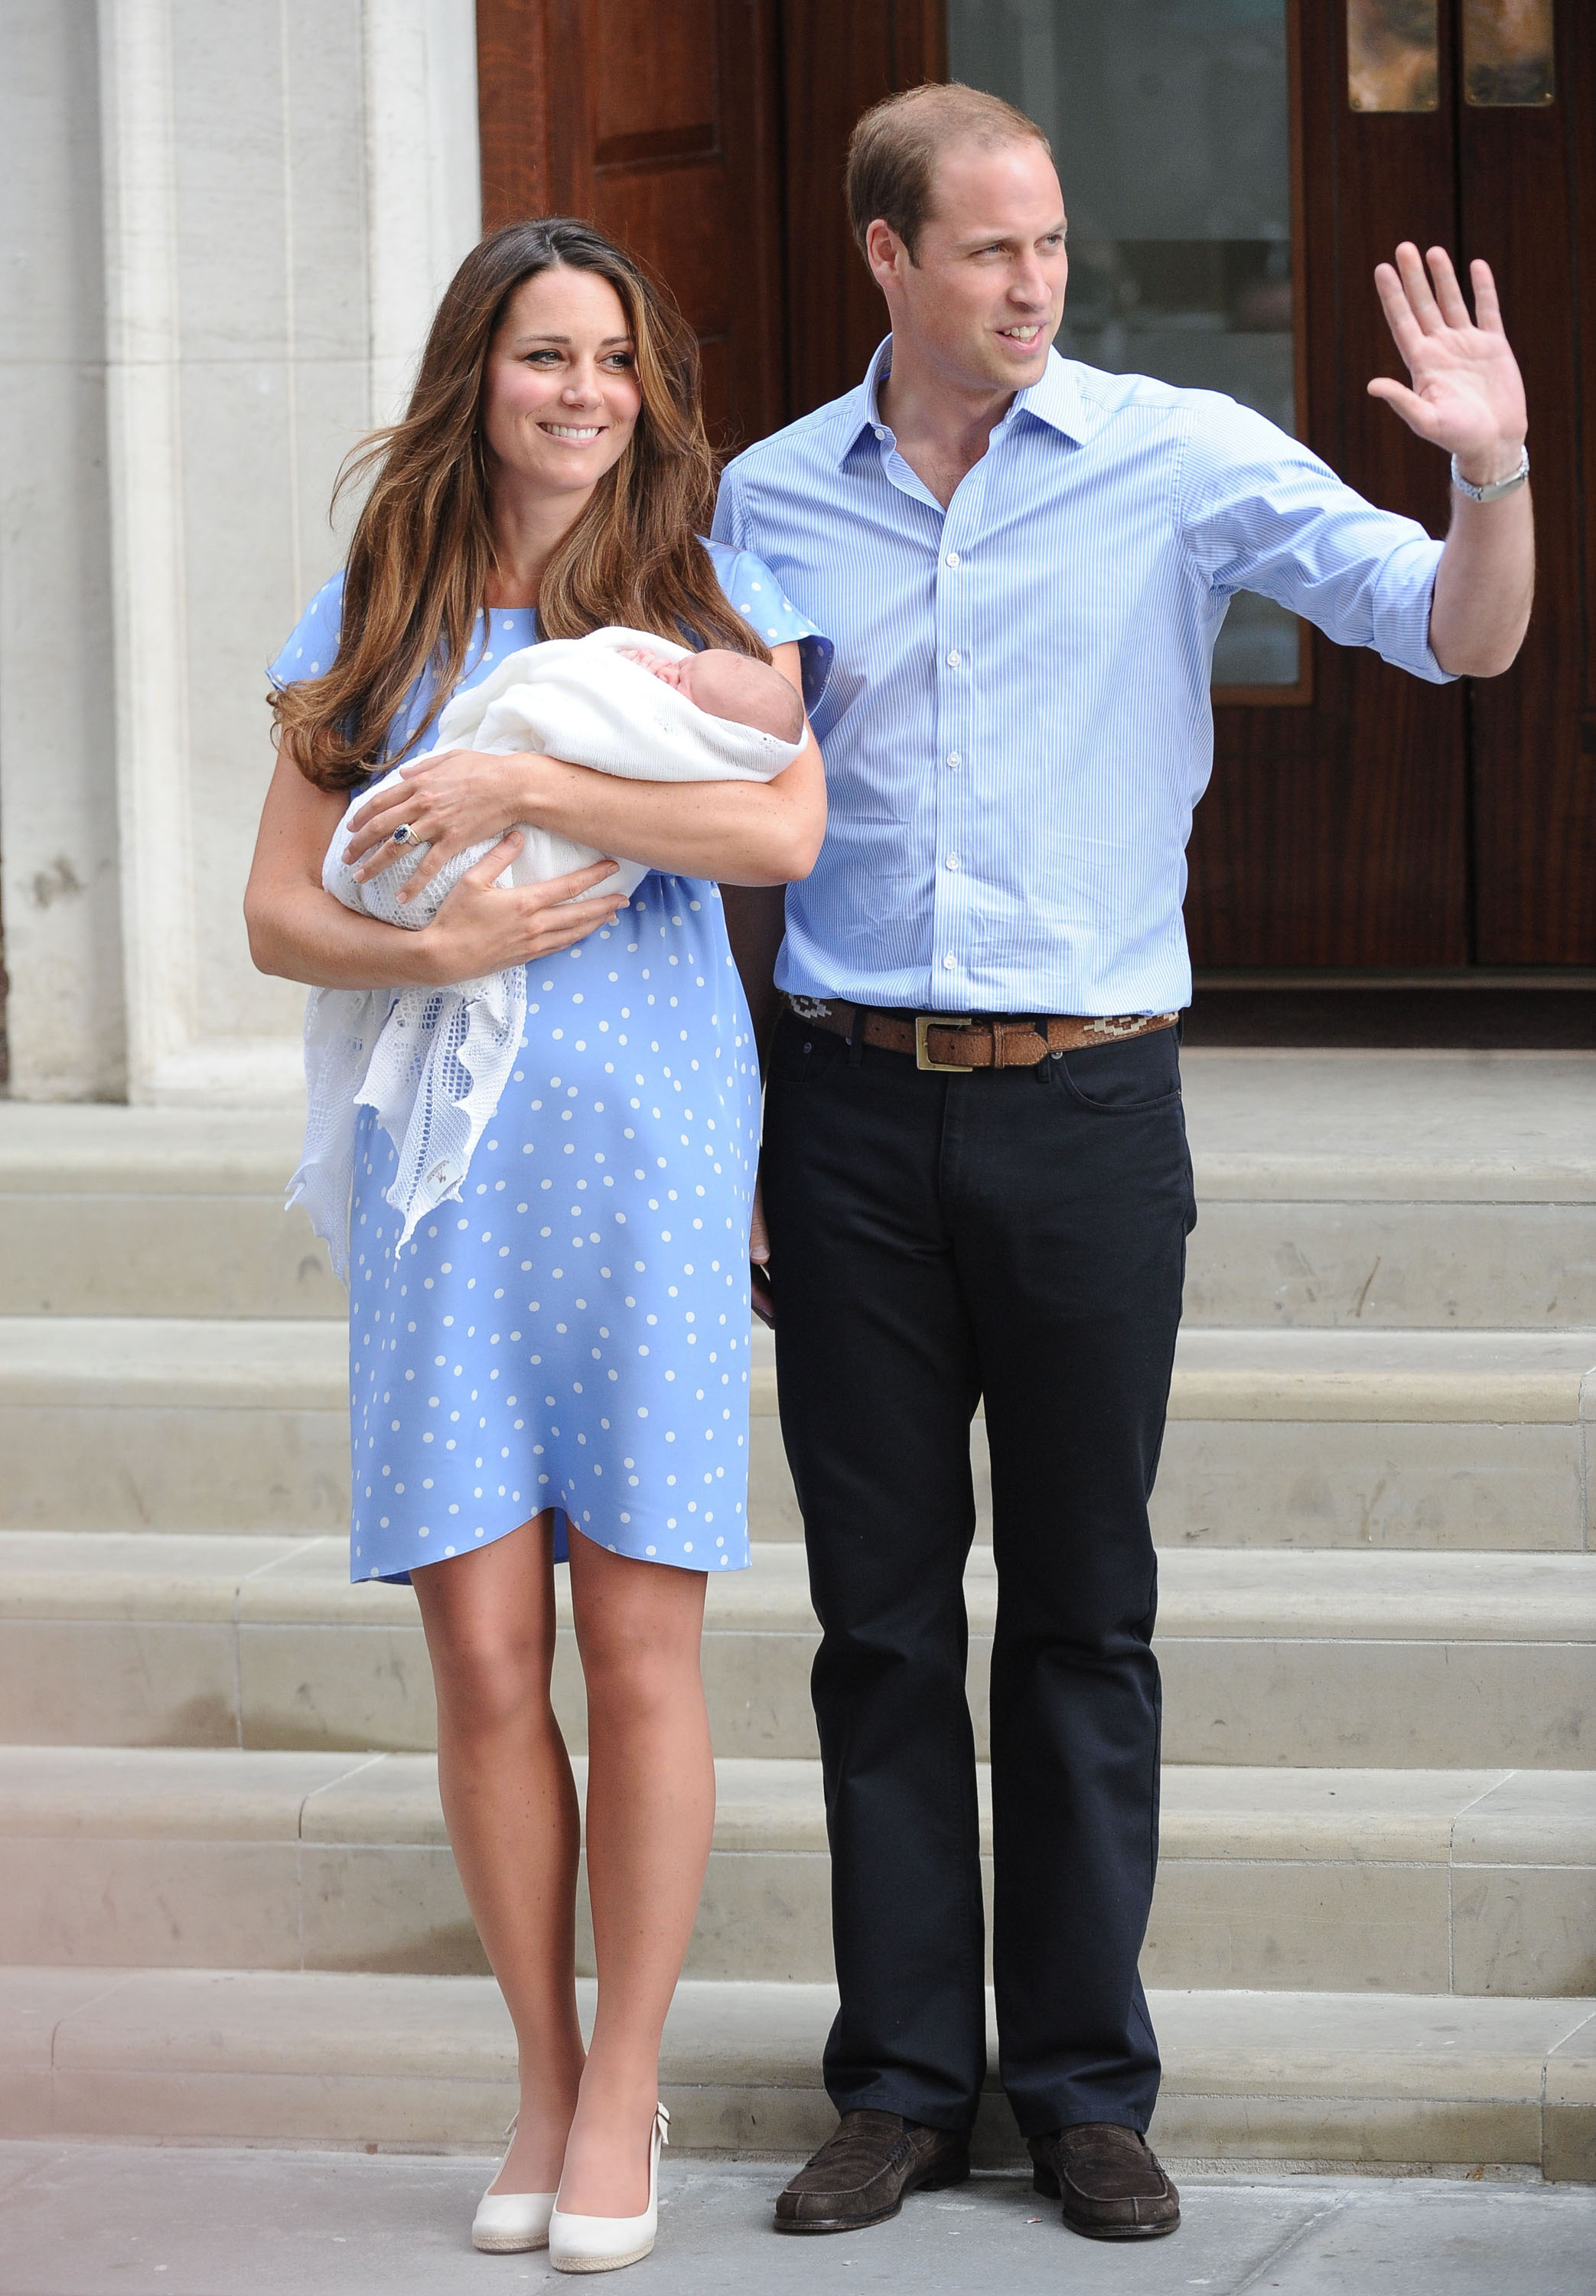 The Royal Baby is Here! William and Kate Welcome Prince George Alexander Louis of Cambridge